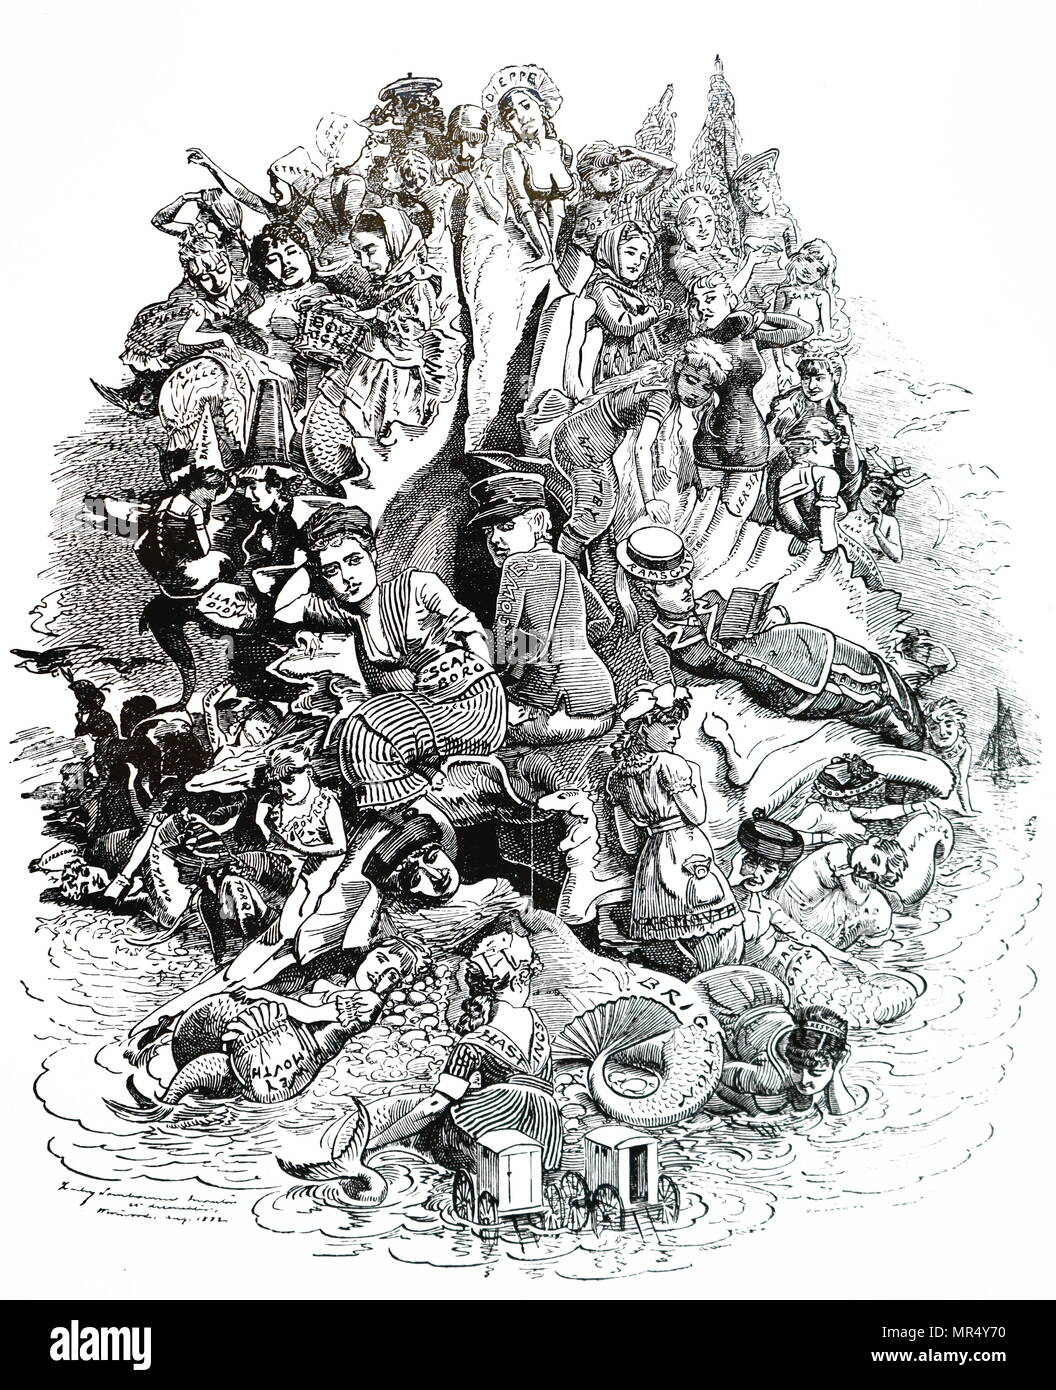 Cartoon commenting on British seaside resorts, each given prominence it earned by the number of visitors it attracted. Illustrated by Edward Linley Sambourne (1844-1910) an English cartoonist and illustrator. Dated 19th century - Stock Image